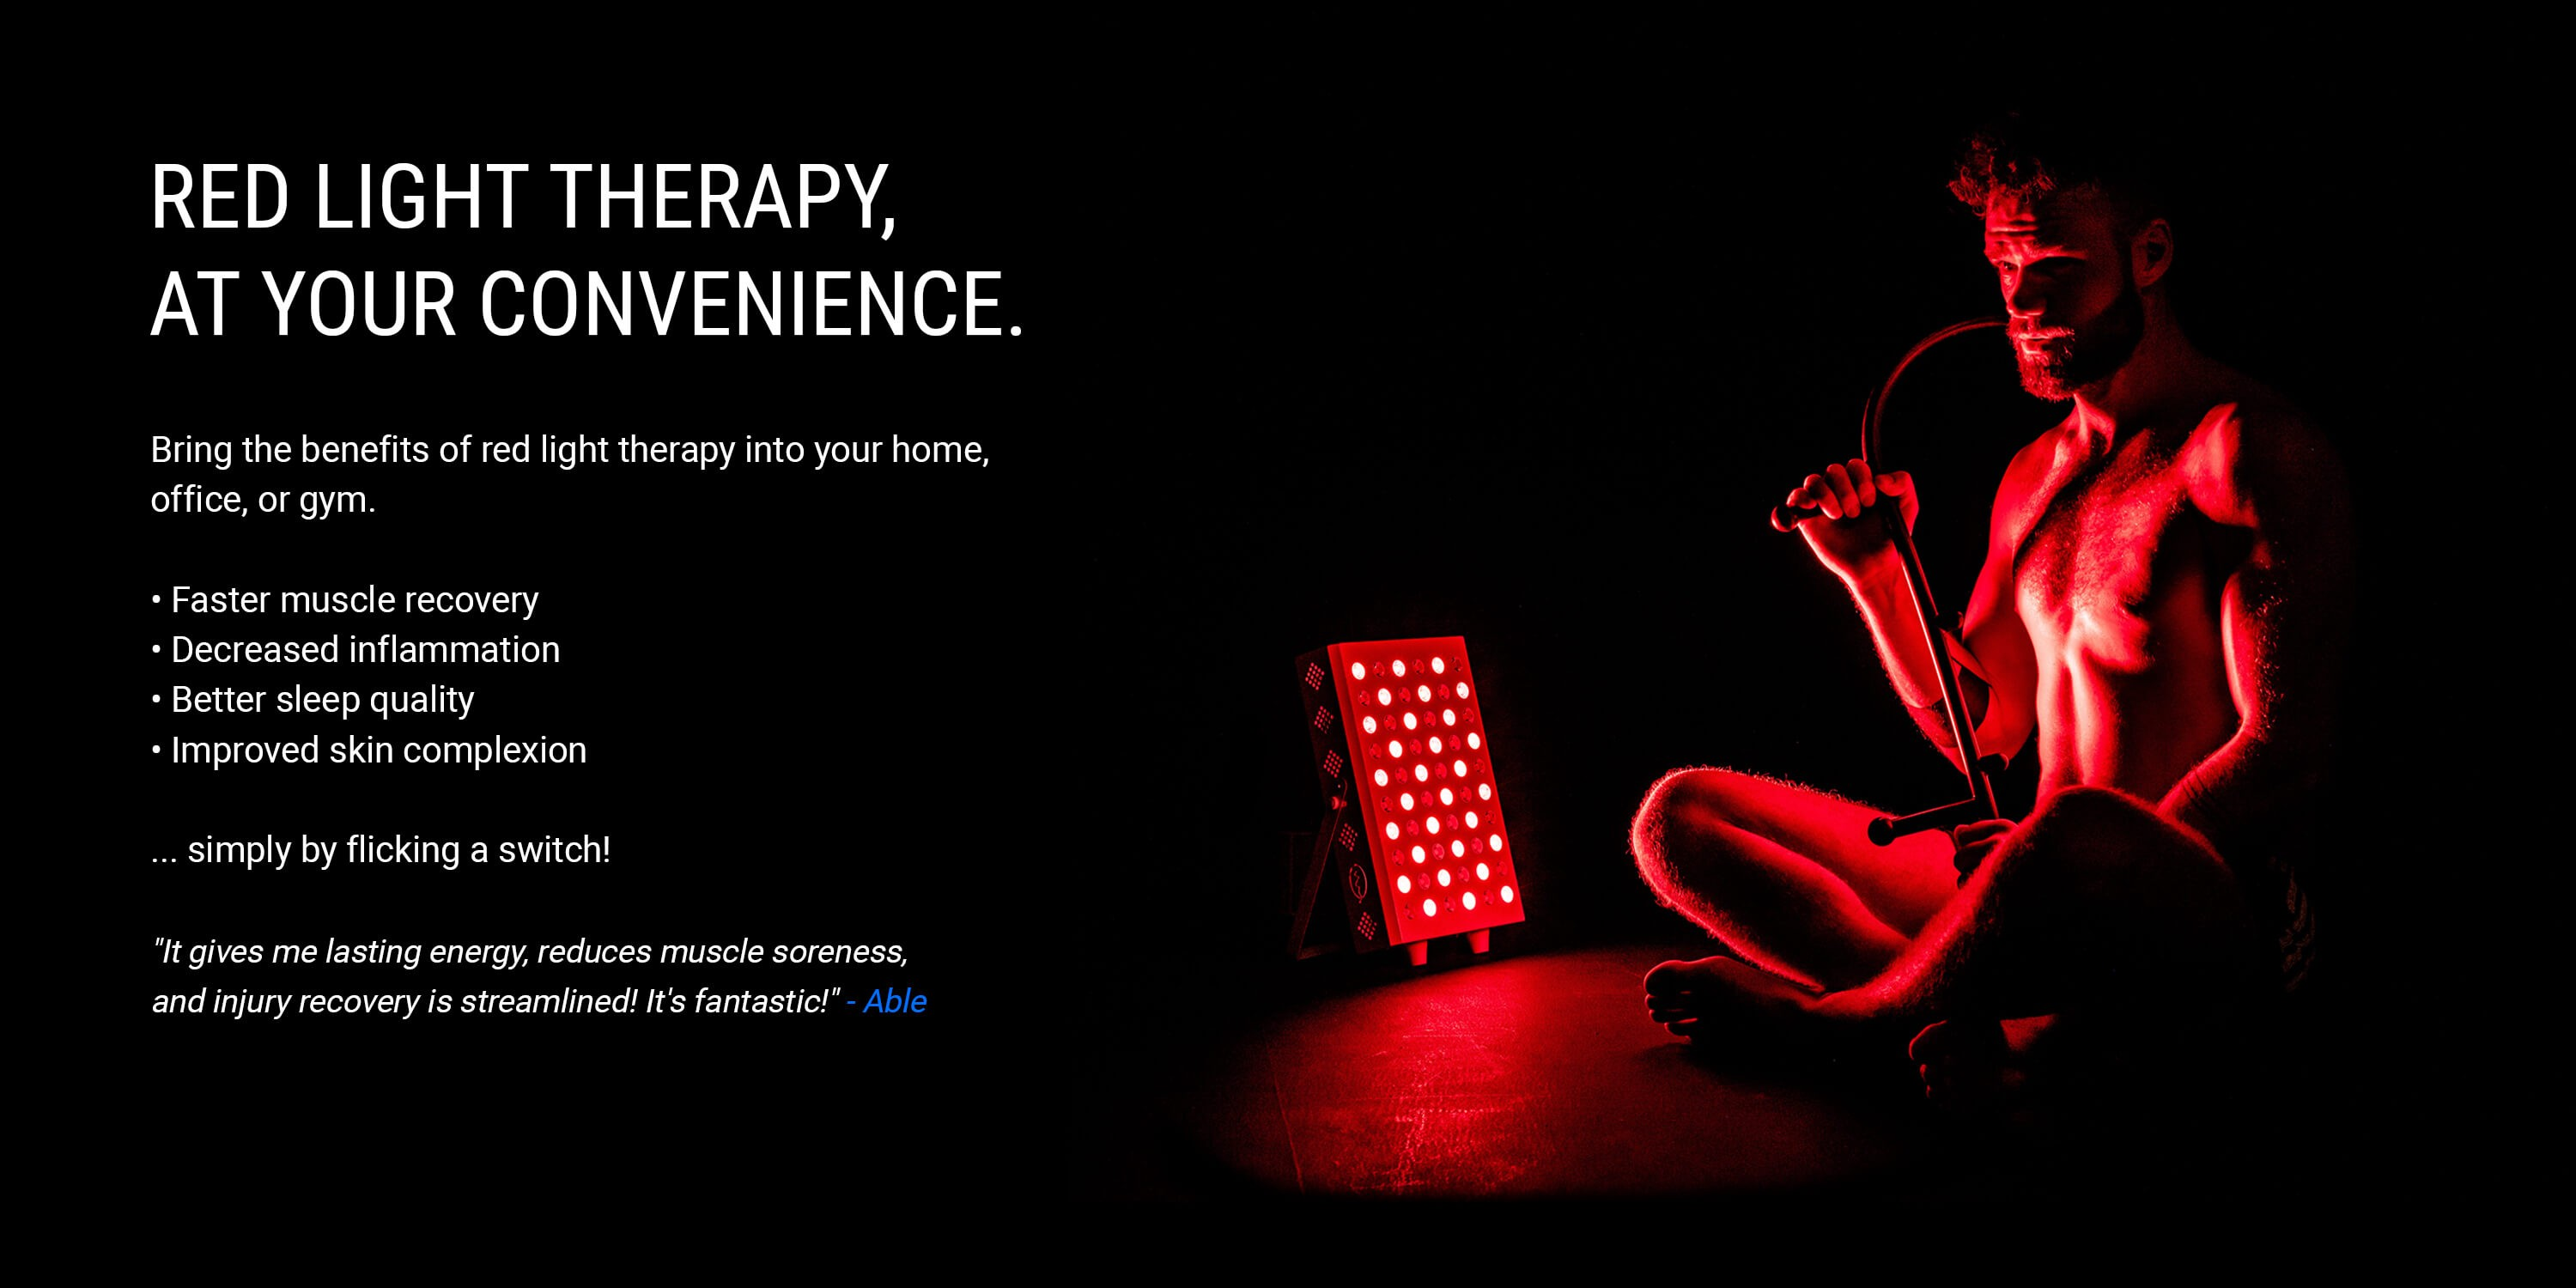 Red light therapy at your convenience